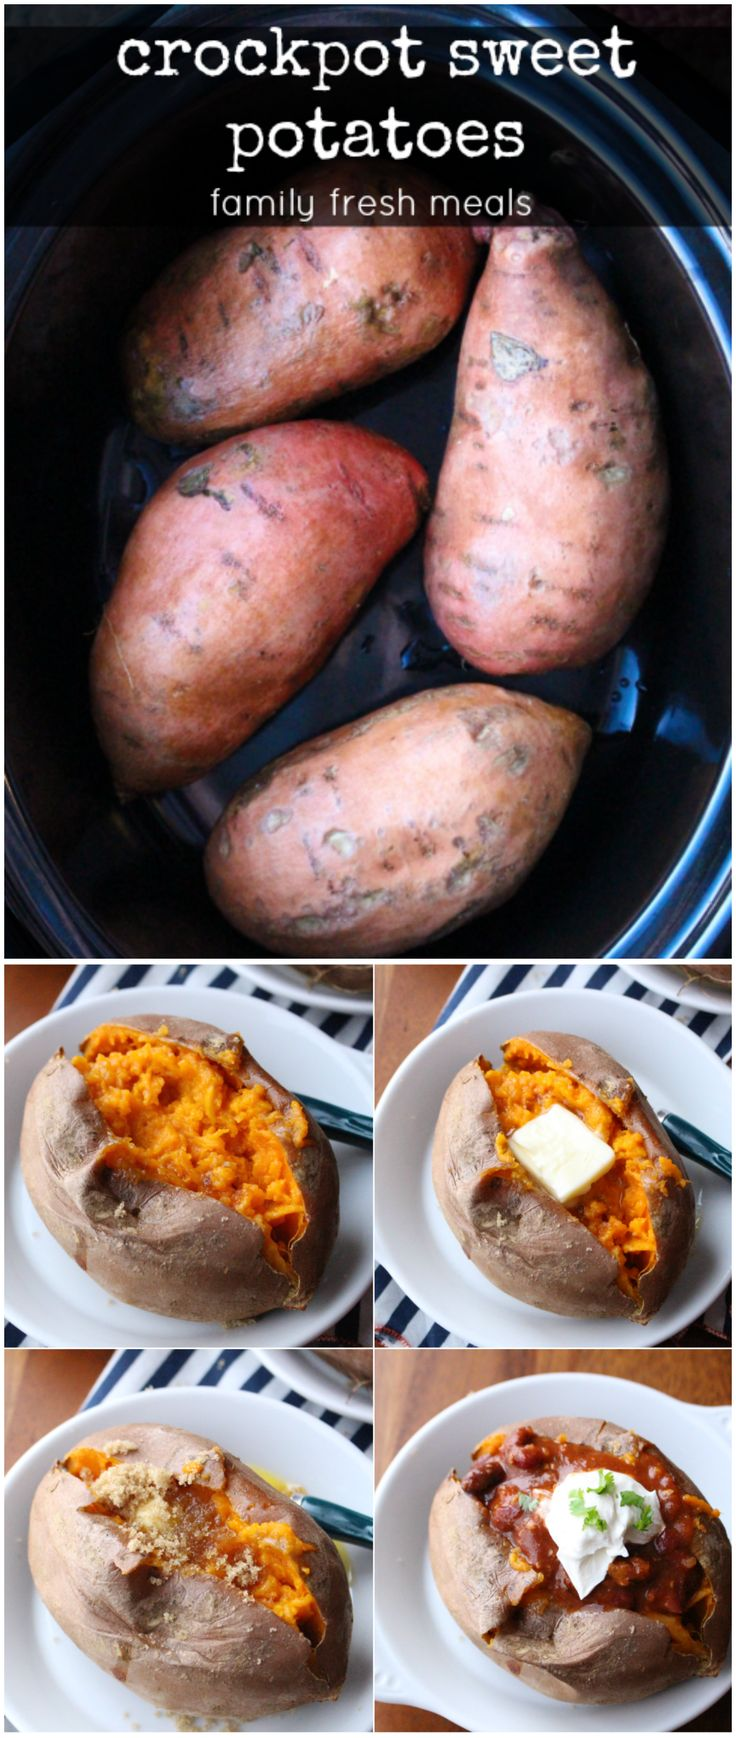 How to make Crockpot Sweet Potatoes - Lots of topping ideas! FamilyFreshMeals.com